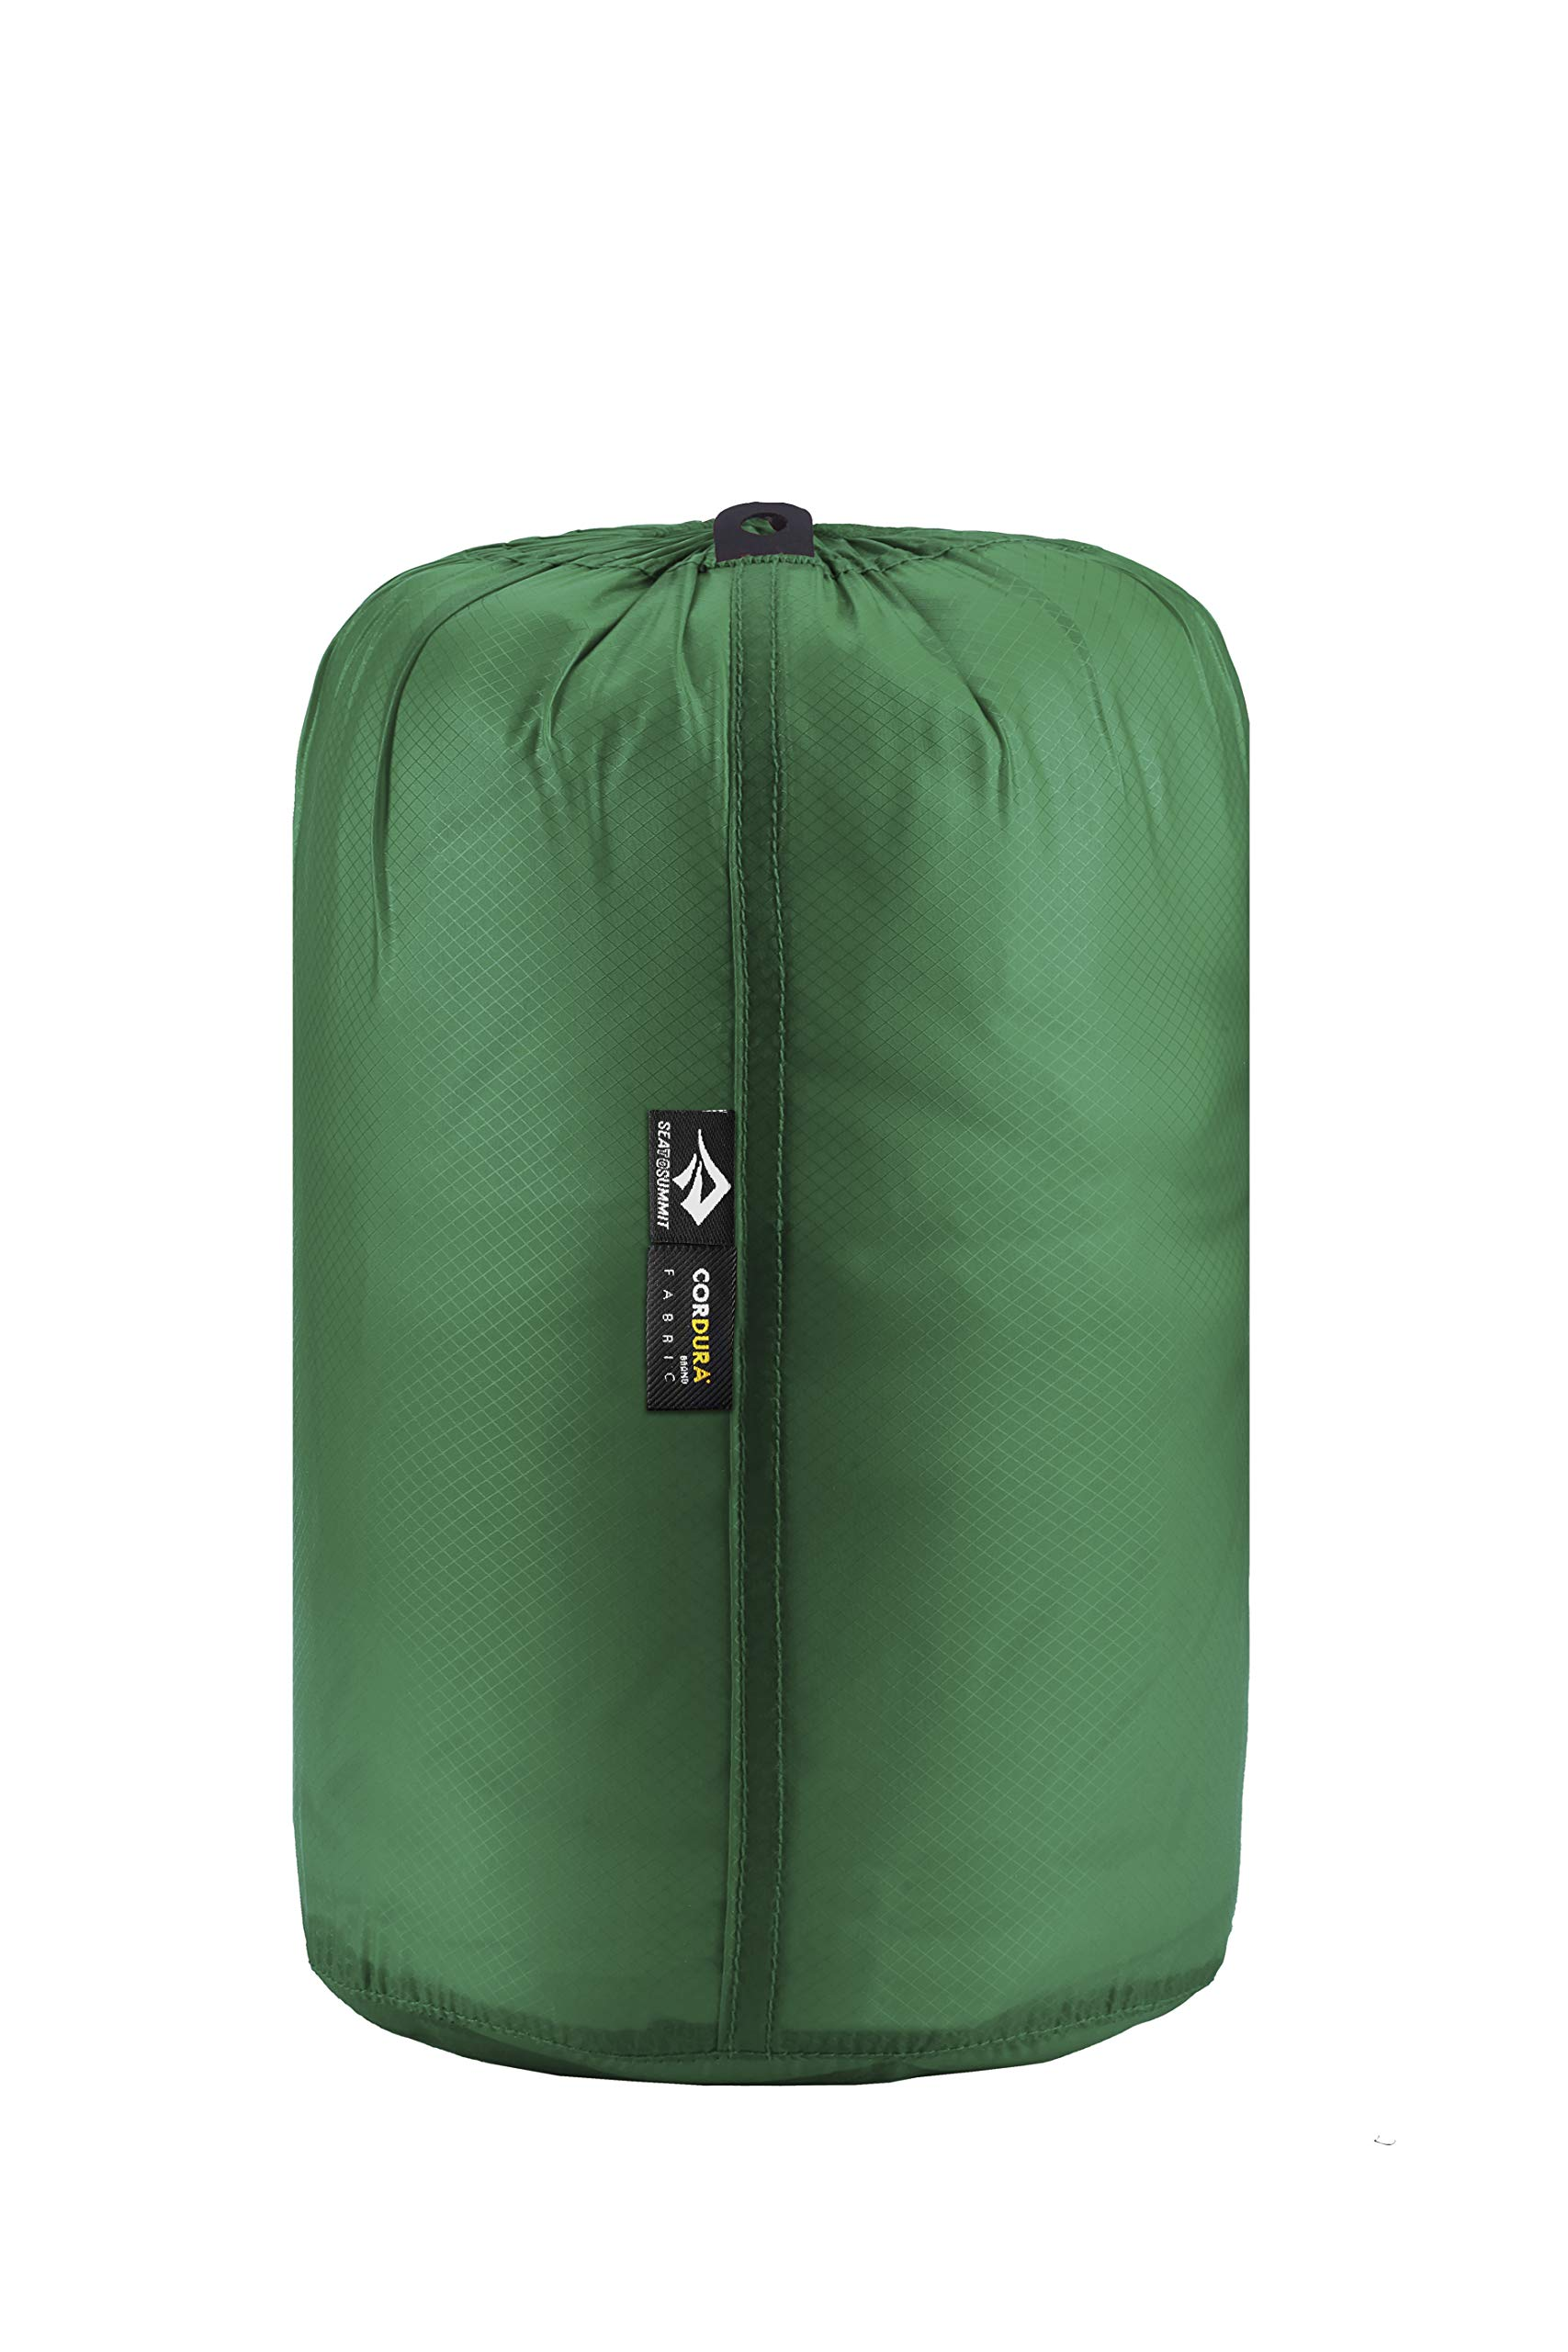 Sea to Summit Ultra-SIL Stuff Sack, Forest Green, 15 Liter by Sea to Summit